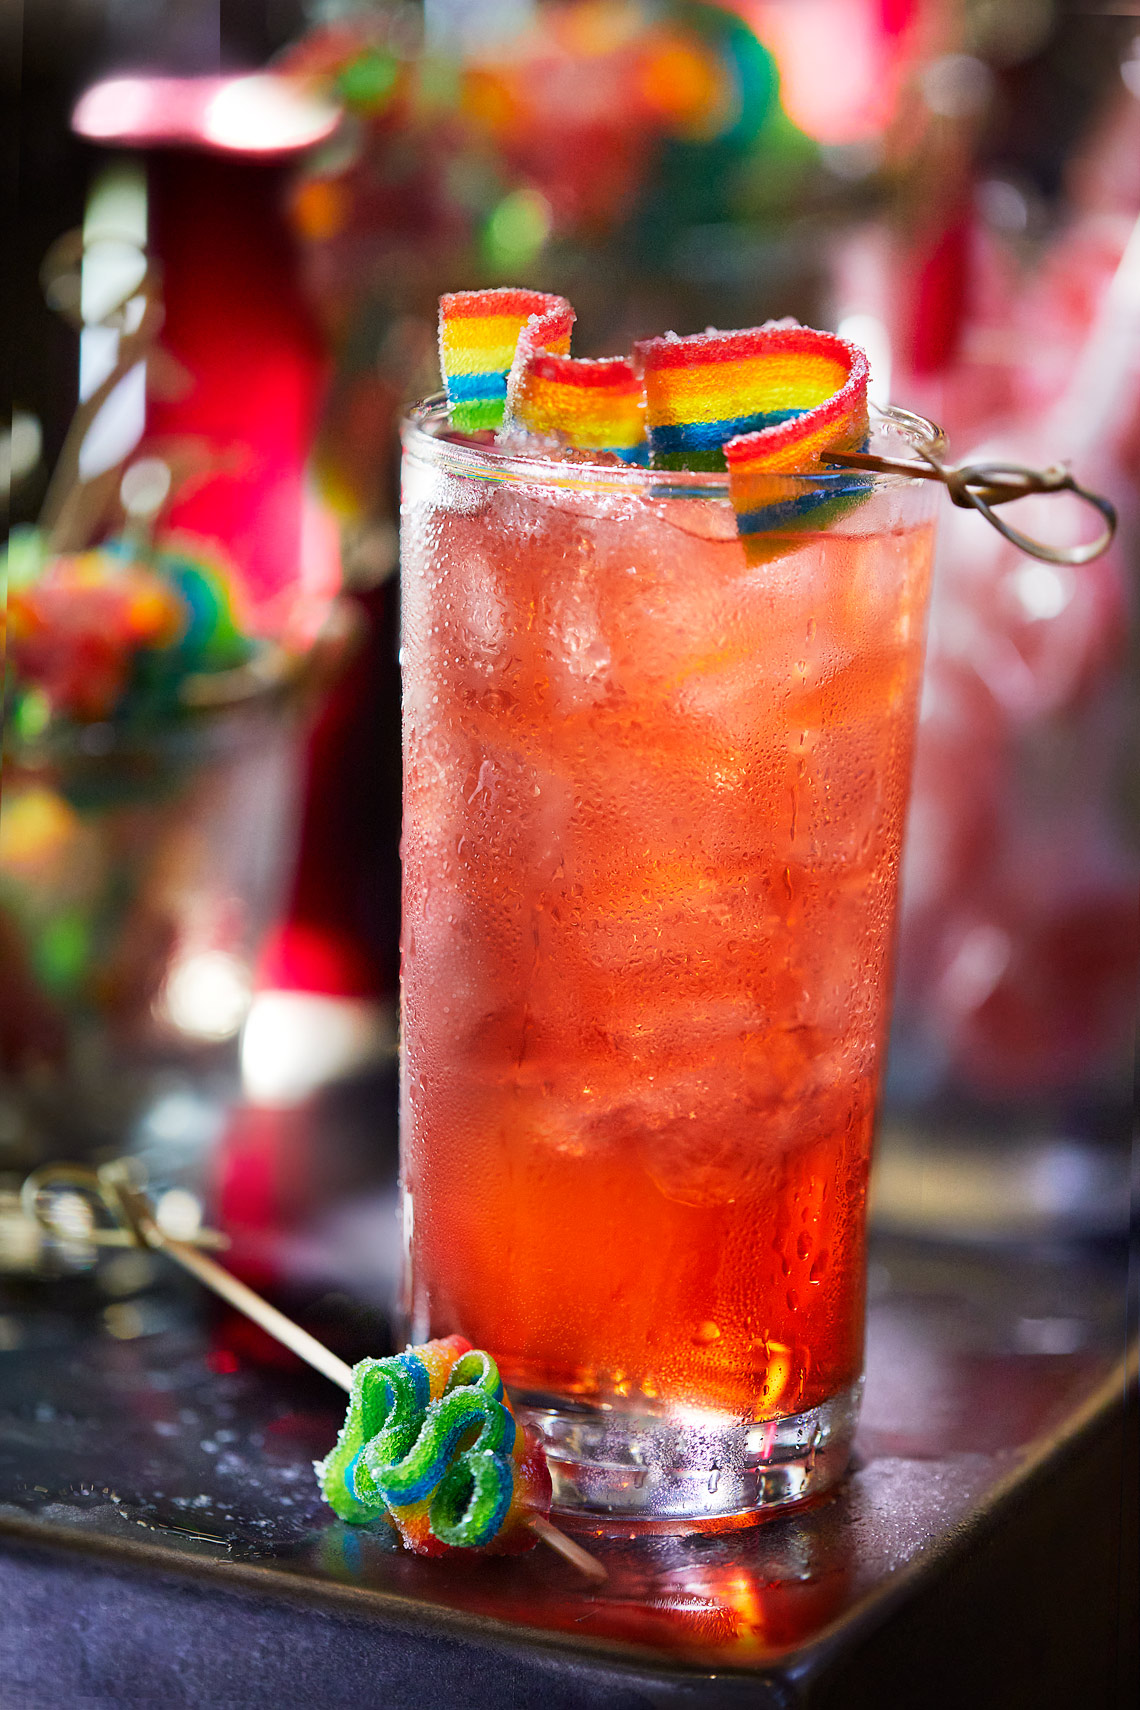 Lisa Frank cocktail at Pins Mechanical in Nashville